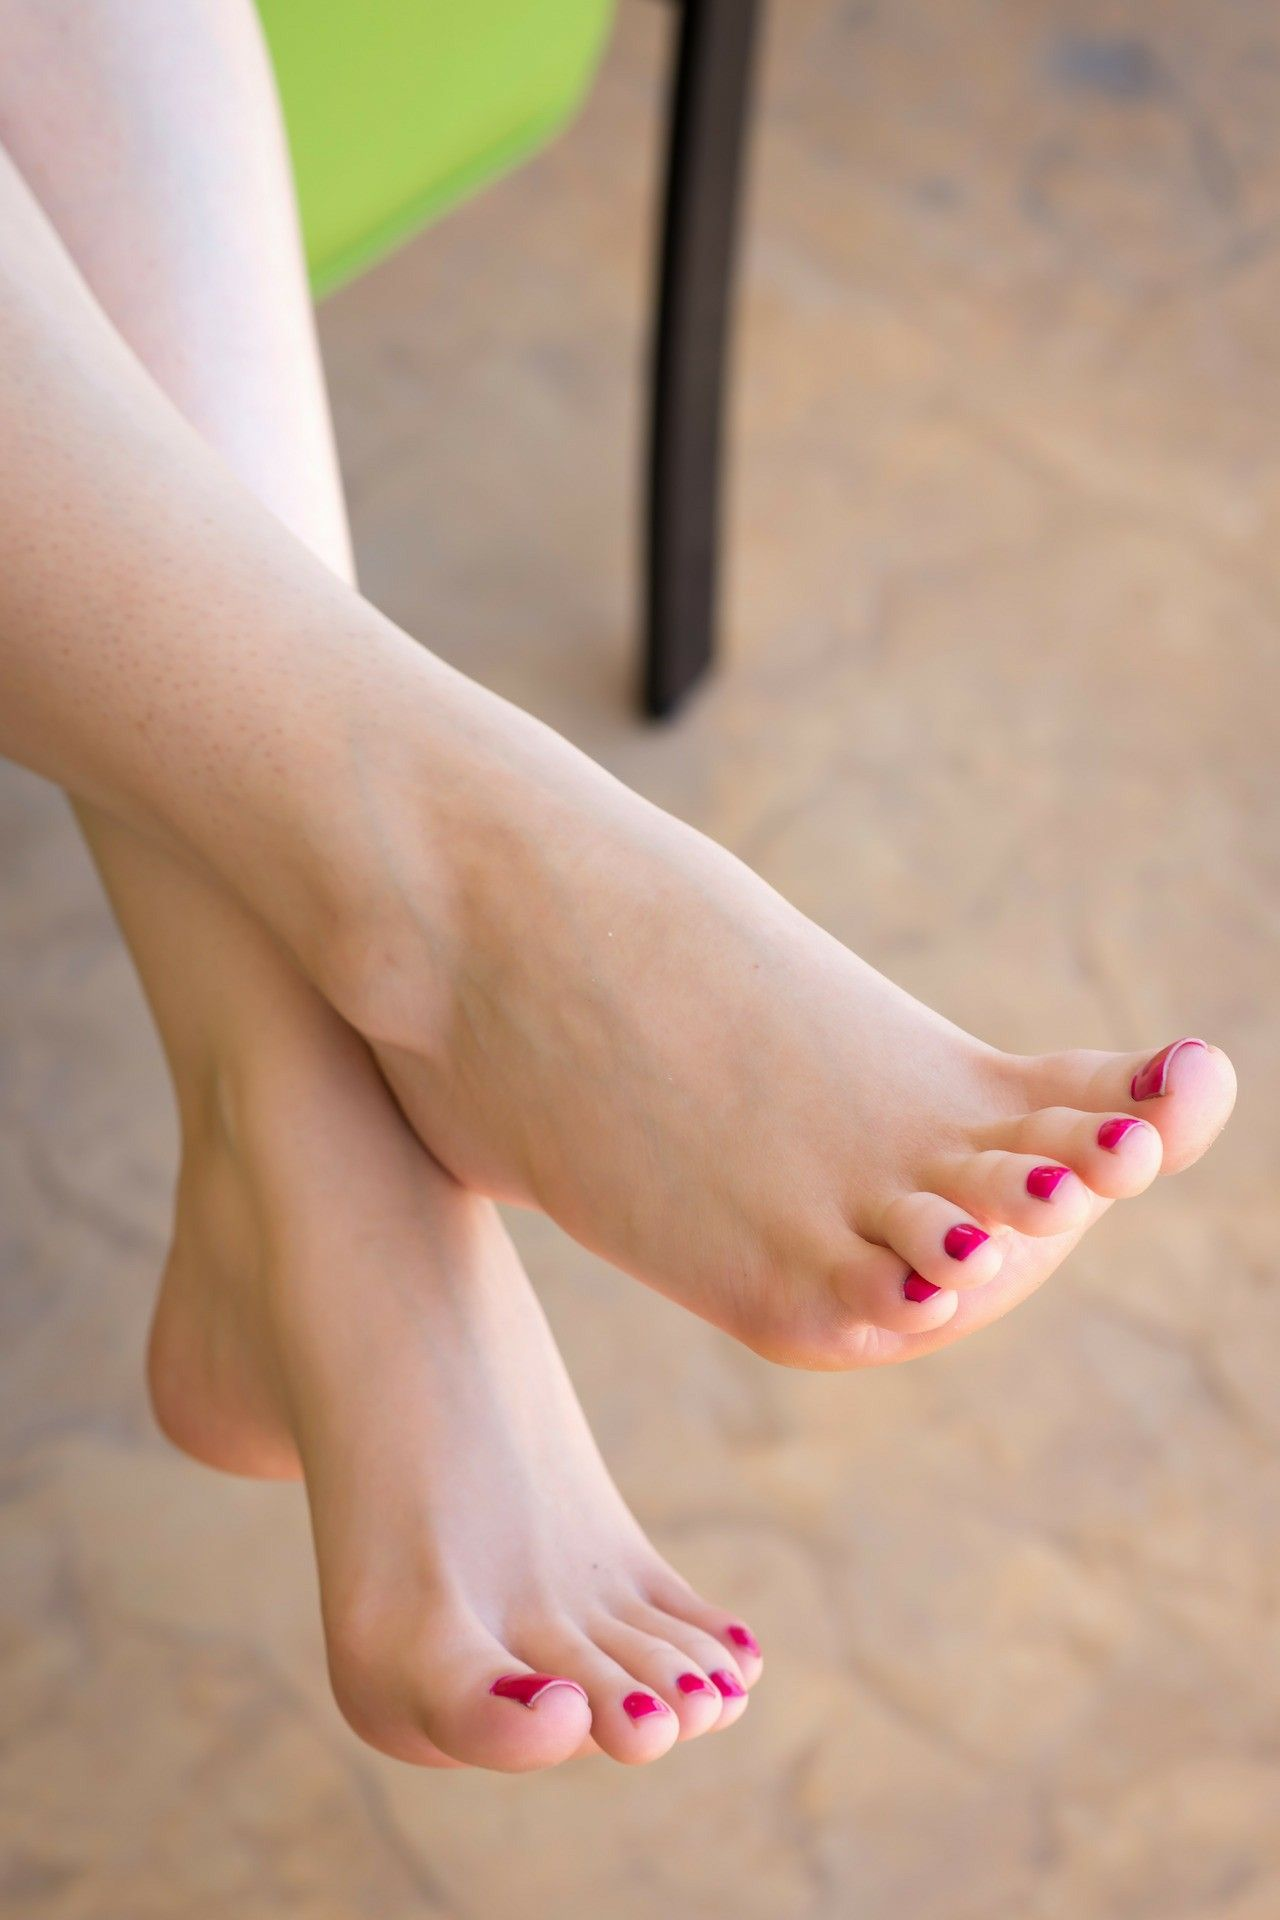 Desire The Best Sexy Feet Pics? Get The Tips Here